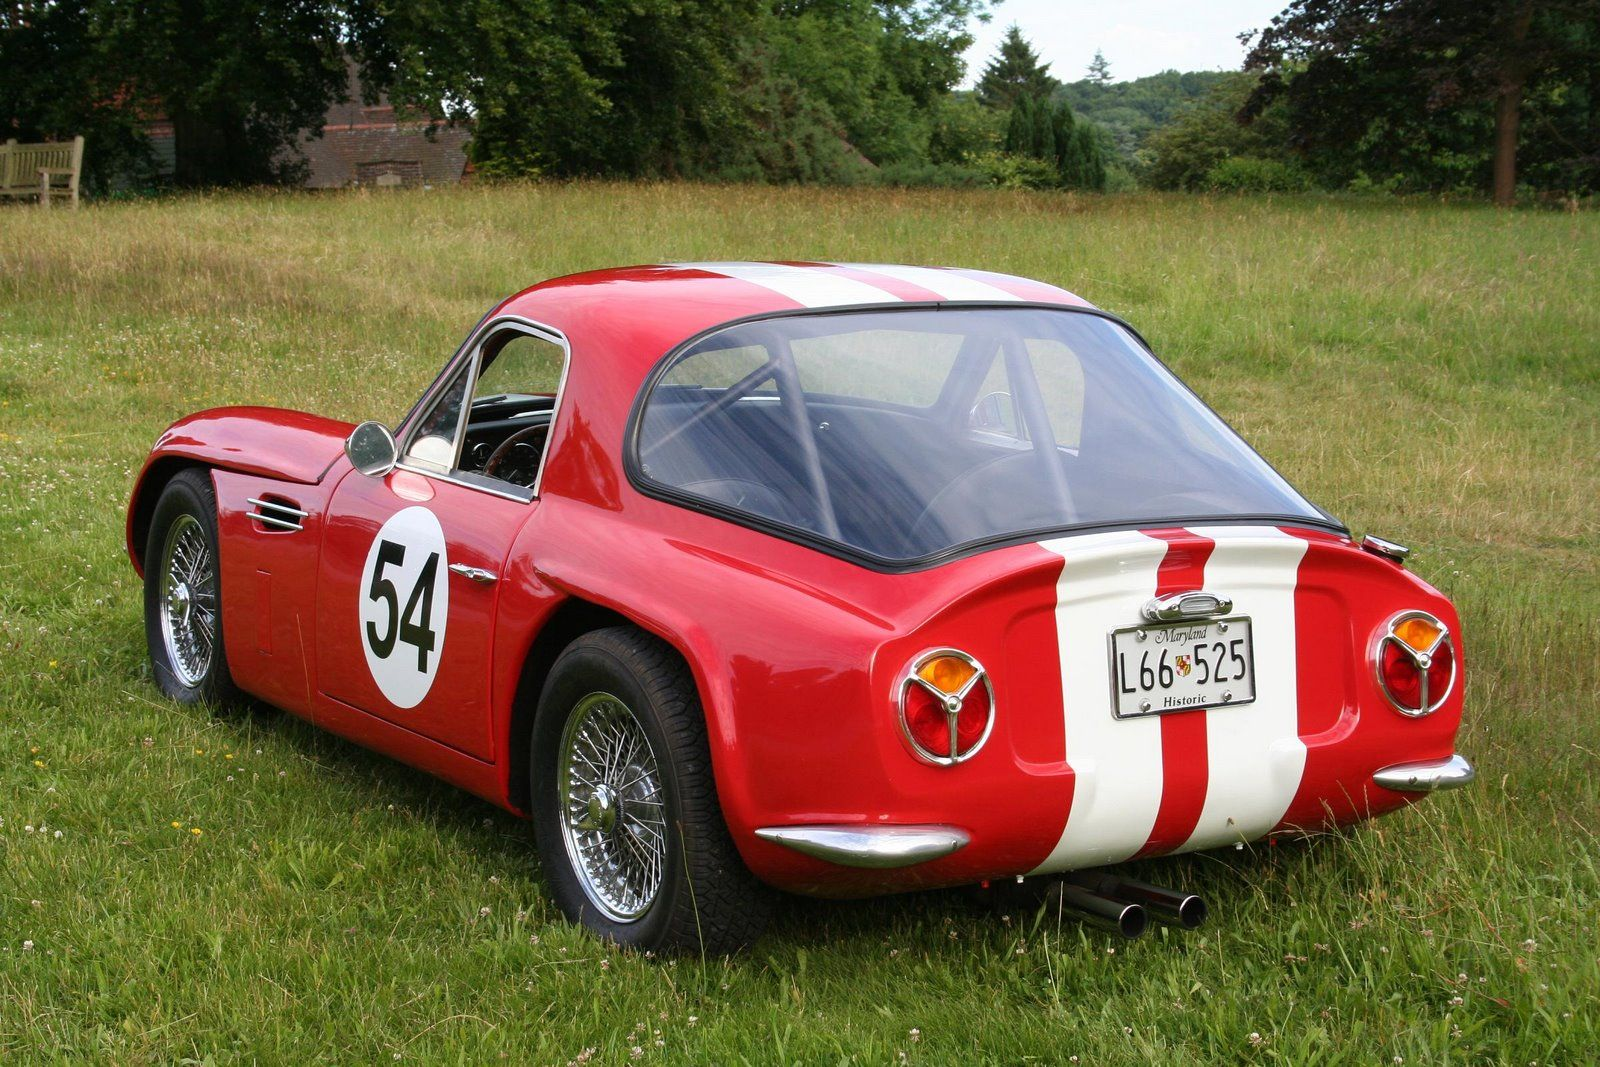 1965 tvr griffith 400 tvr cars british sports cars et classic cars. Black Bedroom Furniture Sets. Home Design Ideas